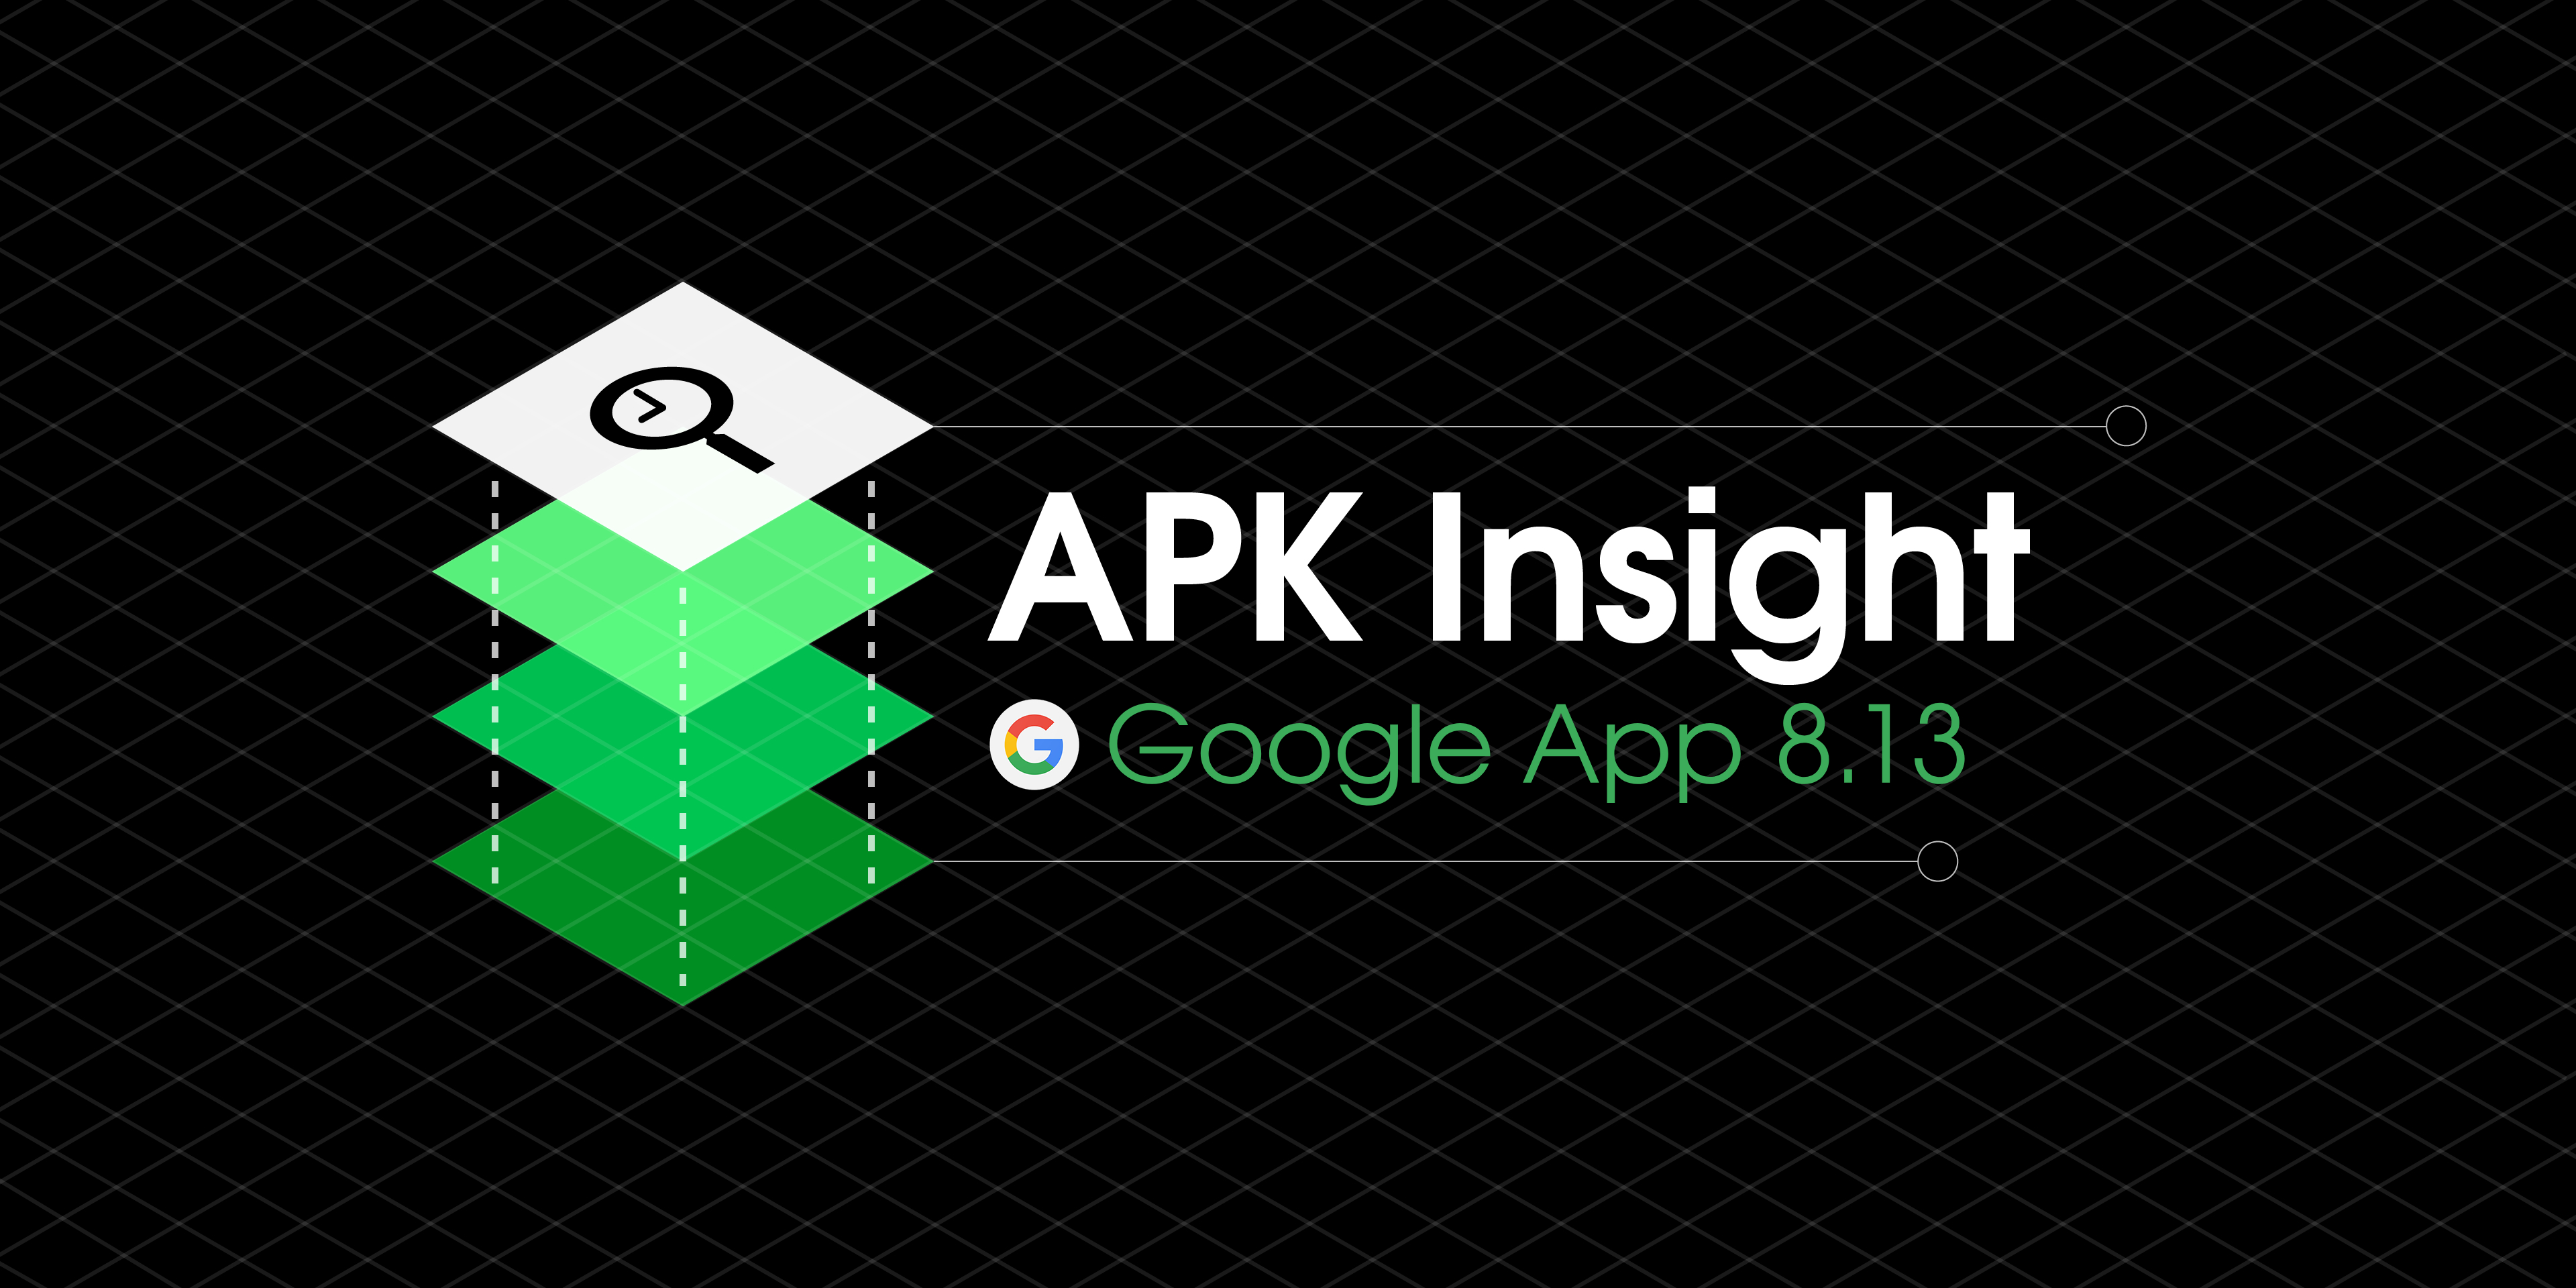 google app 8 13 preps new assistant cameo voice family sharing as at a glance exits beta apk insight